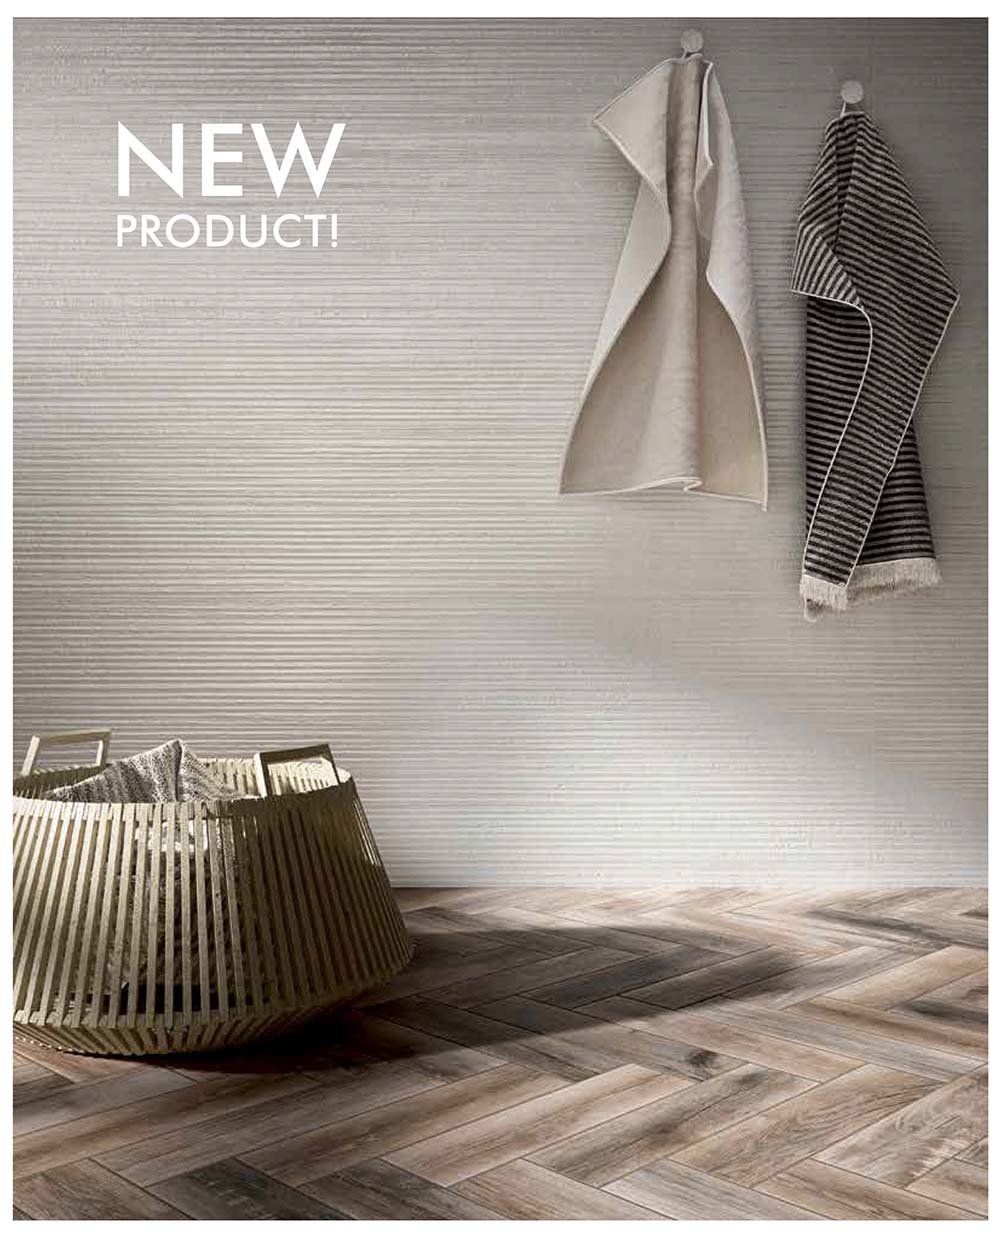 The New Treverkmade Collection From Gemini Tiles Press Release - Place and press floor tiles